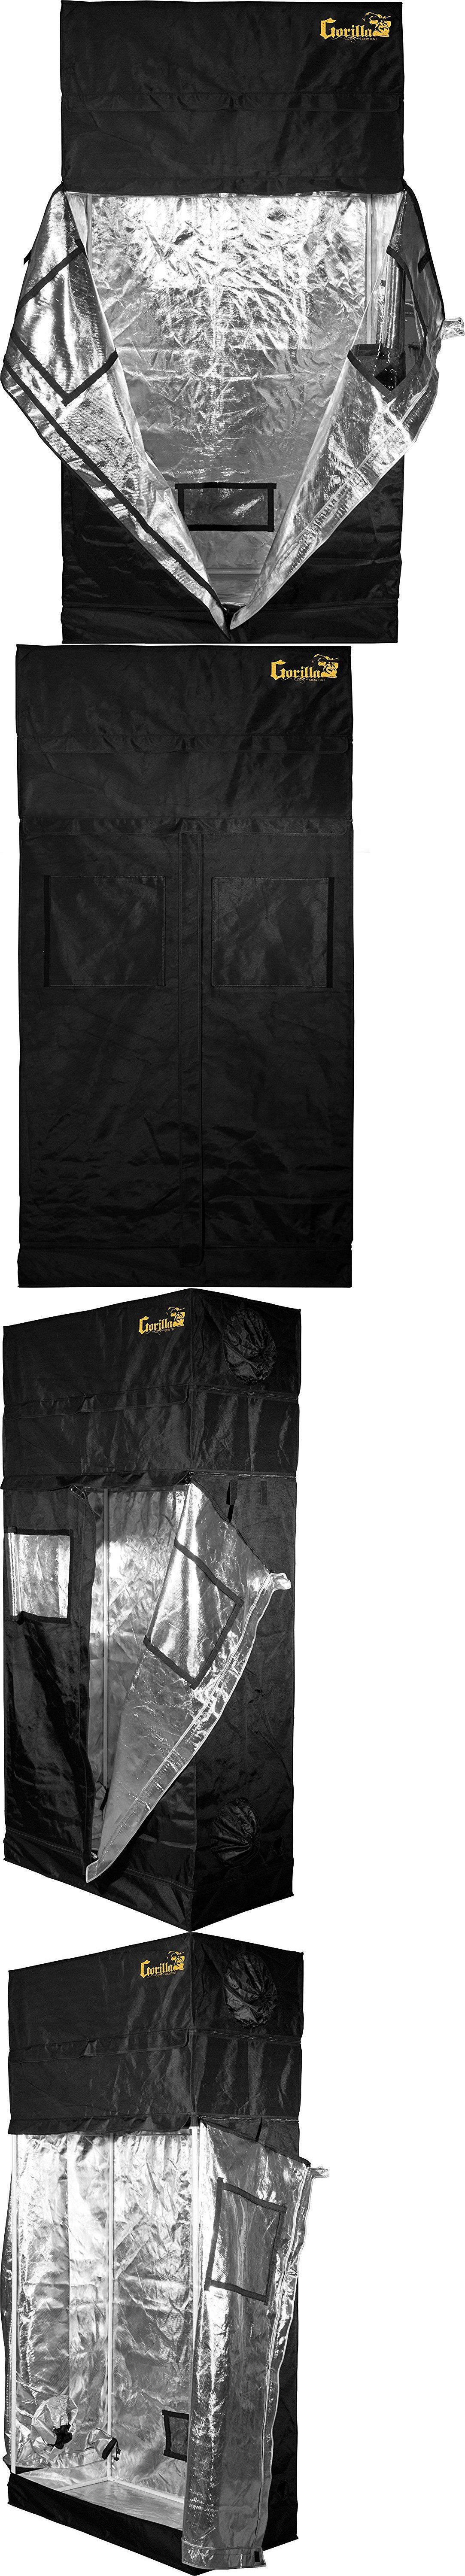 Tents Tarps and Shelves 178993 Gorilla Grow Tent Ltggt24 Tent 2 X 4 X  sc 1 st  Pinterest & Tents Tarps and Shelves 178993: Gorilla Grow Tent Ltggt24 Tent 2 ...